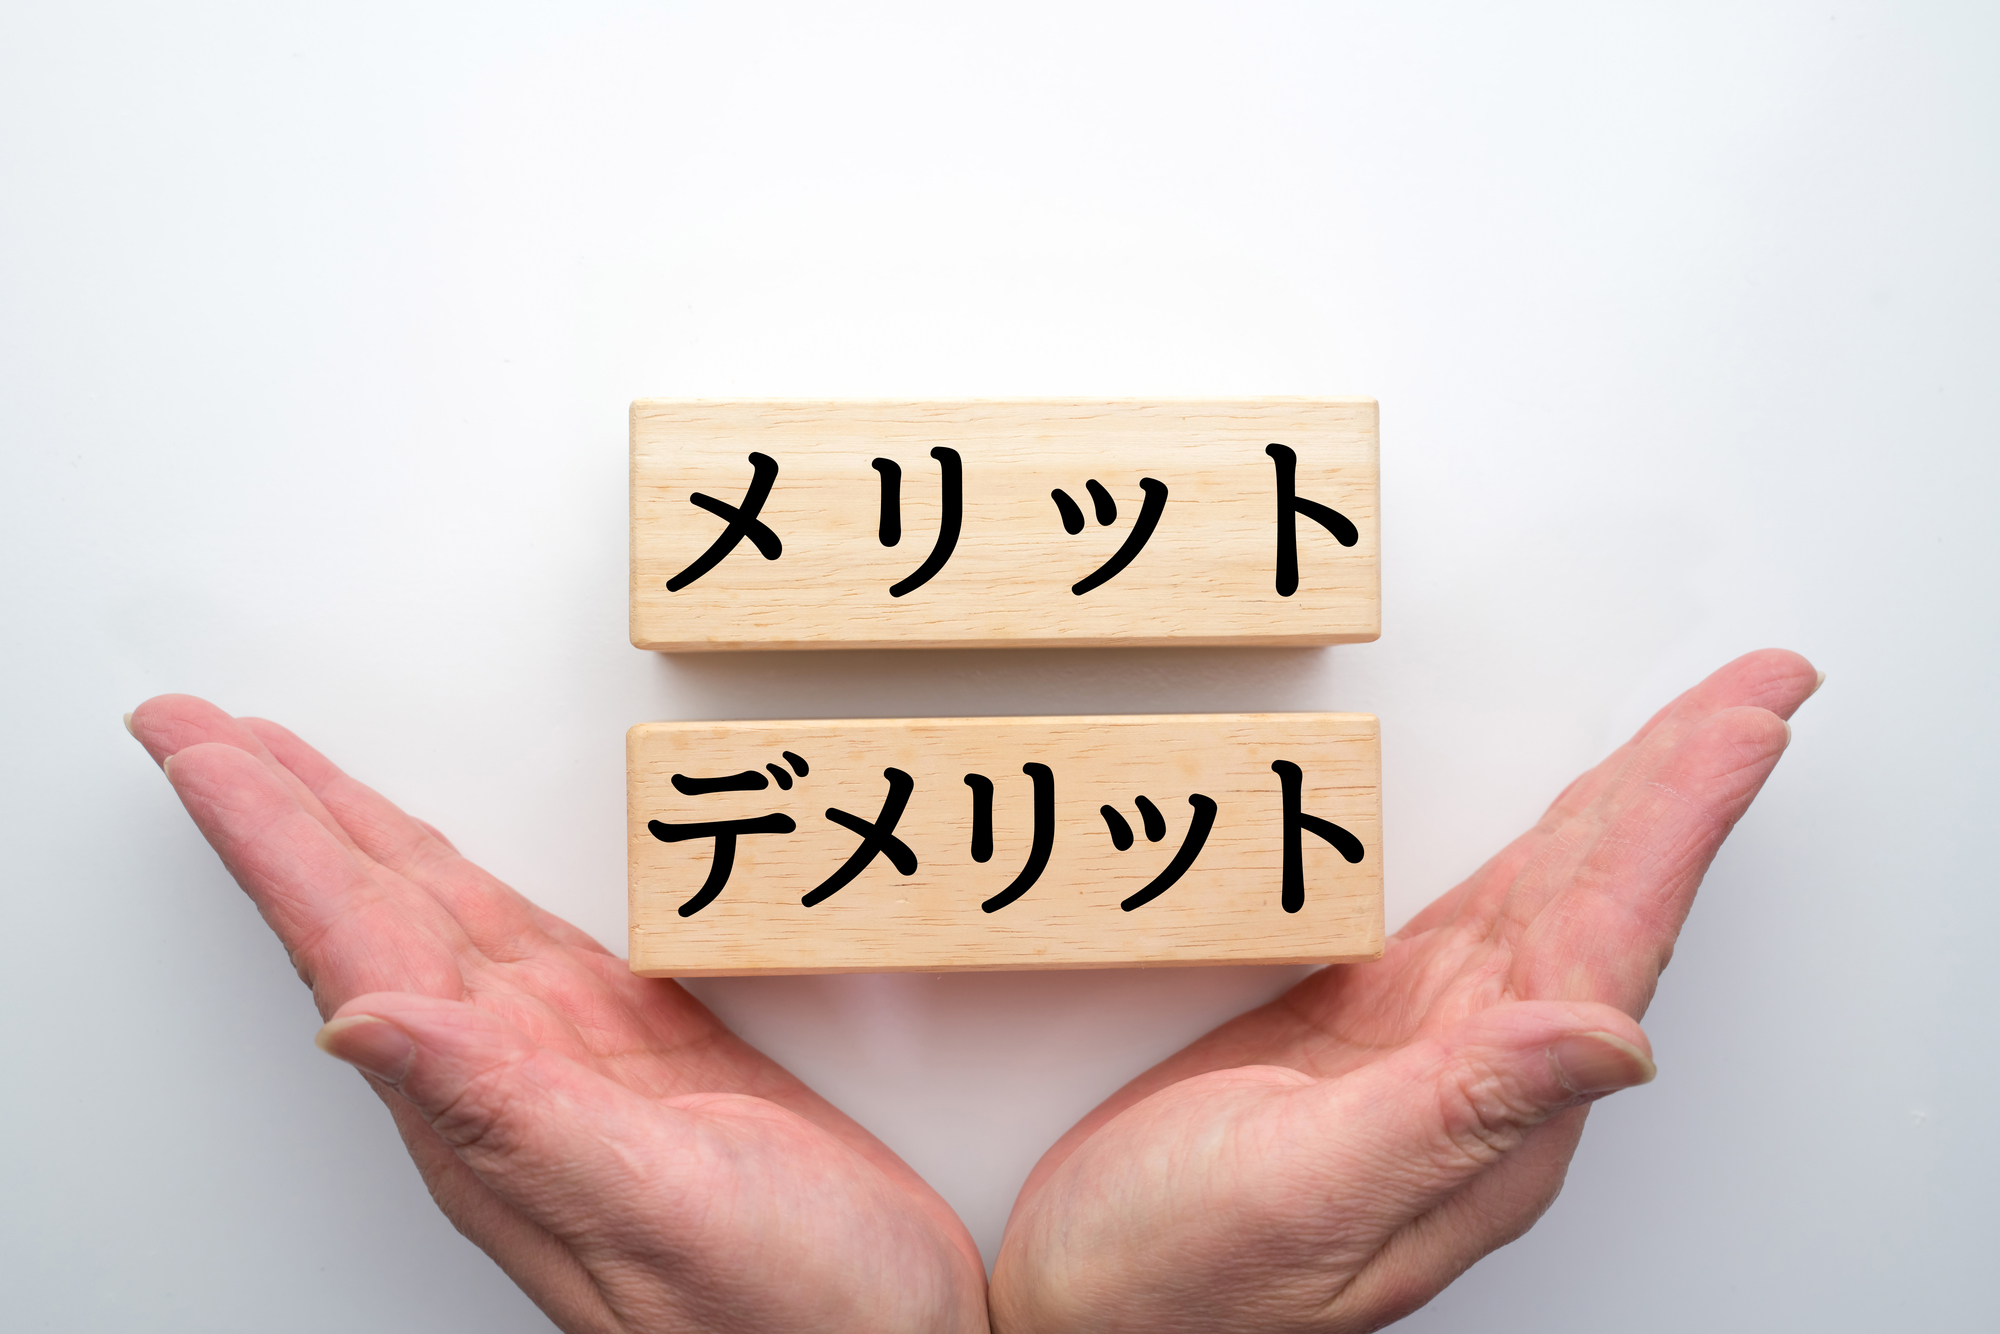 """<span class=""""title"""">ローコスト住宅のメリットとデメリット。シンプルで住みやすい?</span>"""